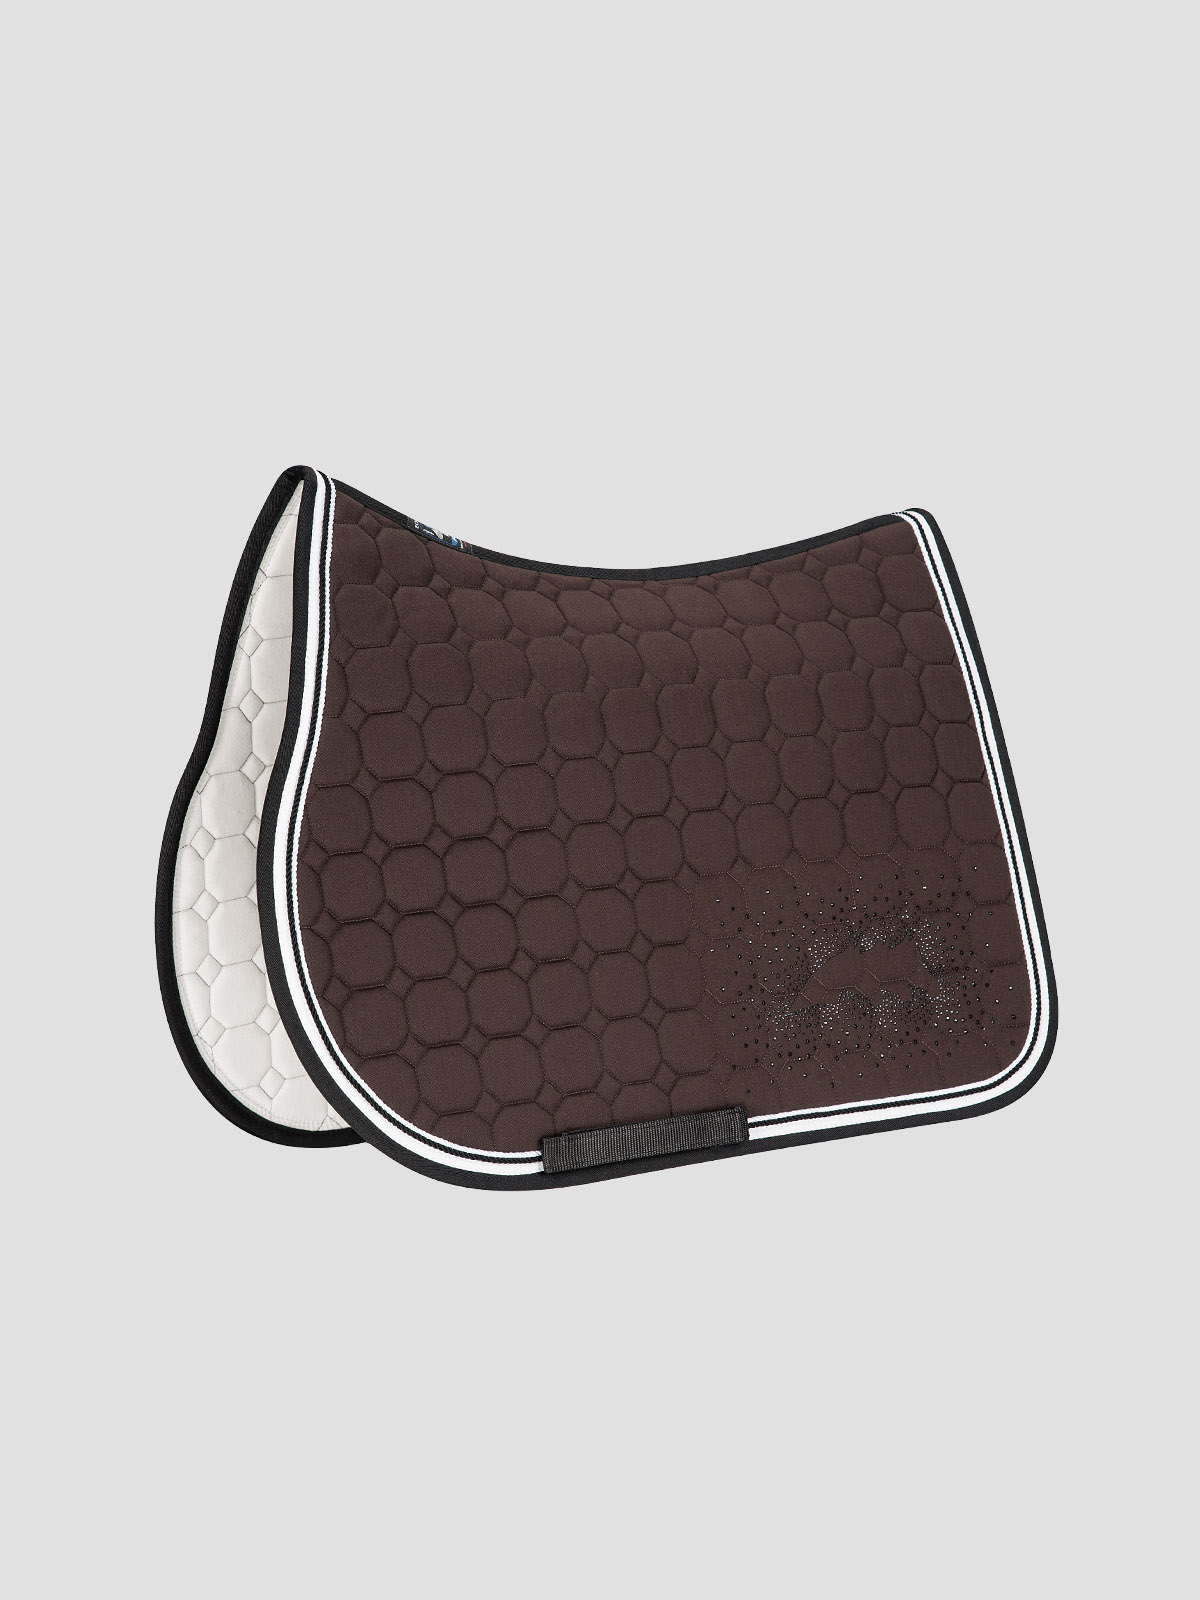 JOYCE - Octagon Saddle Pad with Equiline Logo and Studs 5